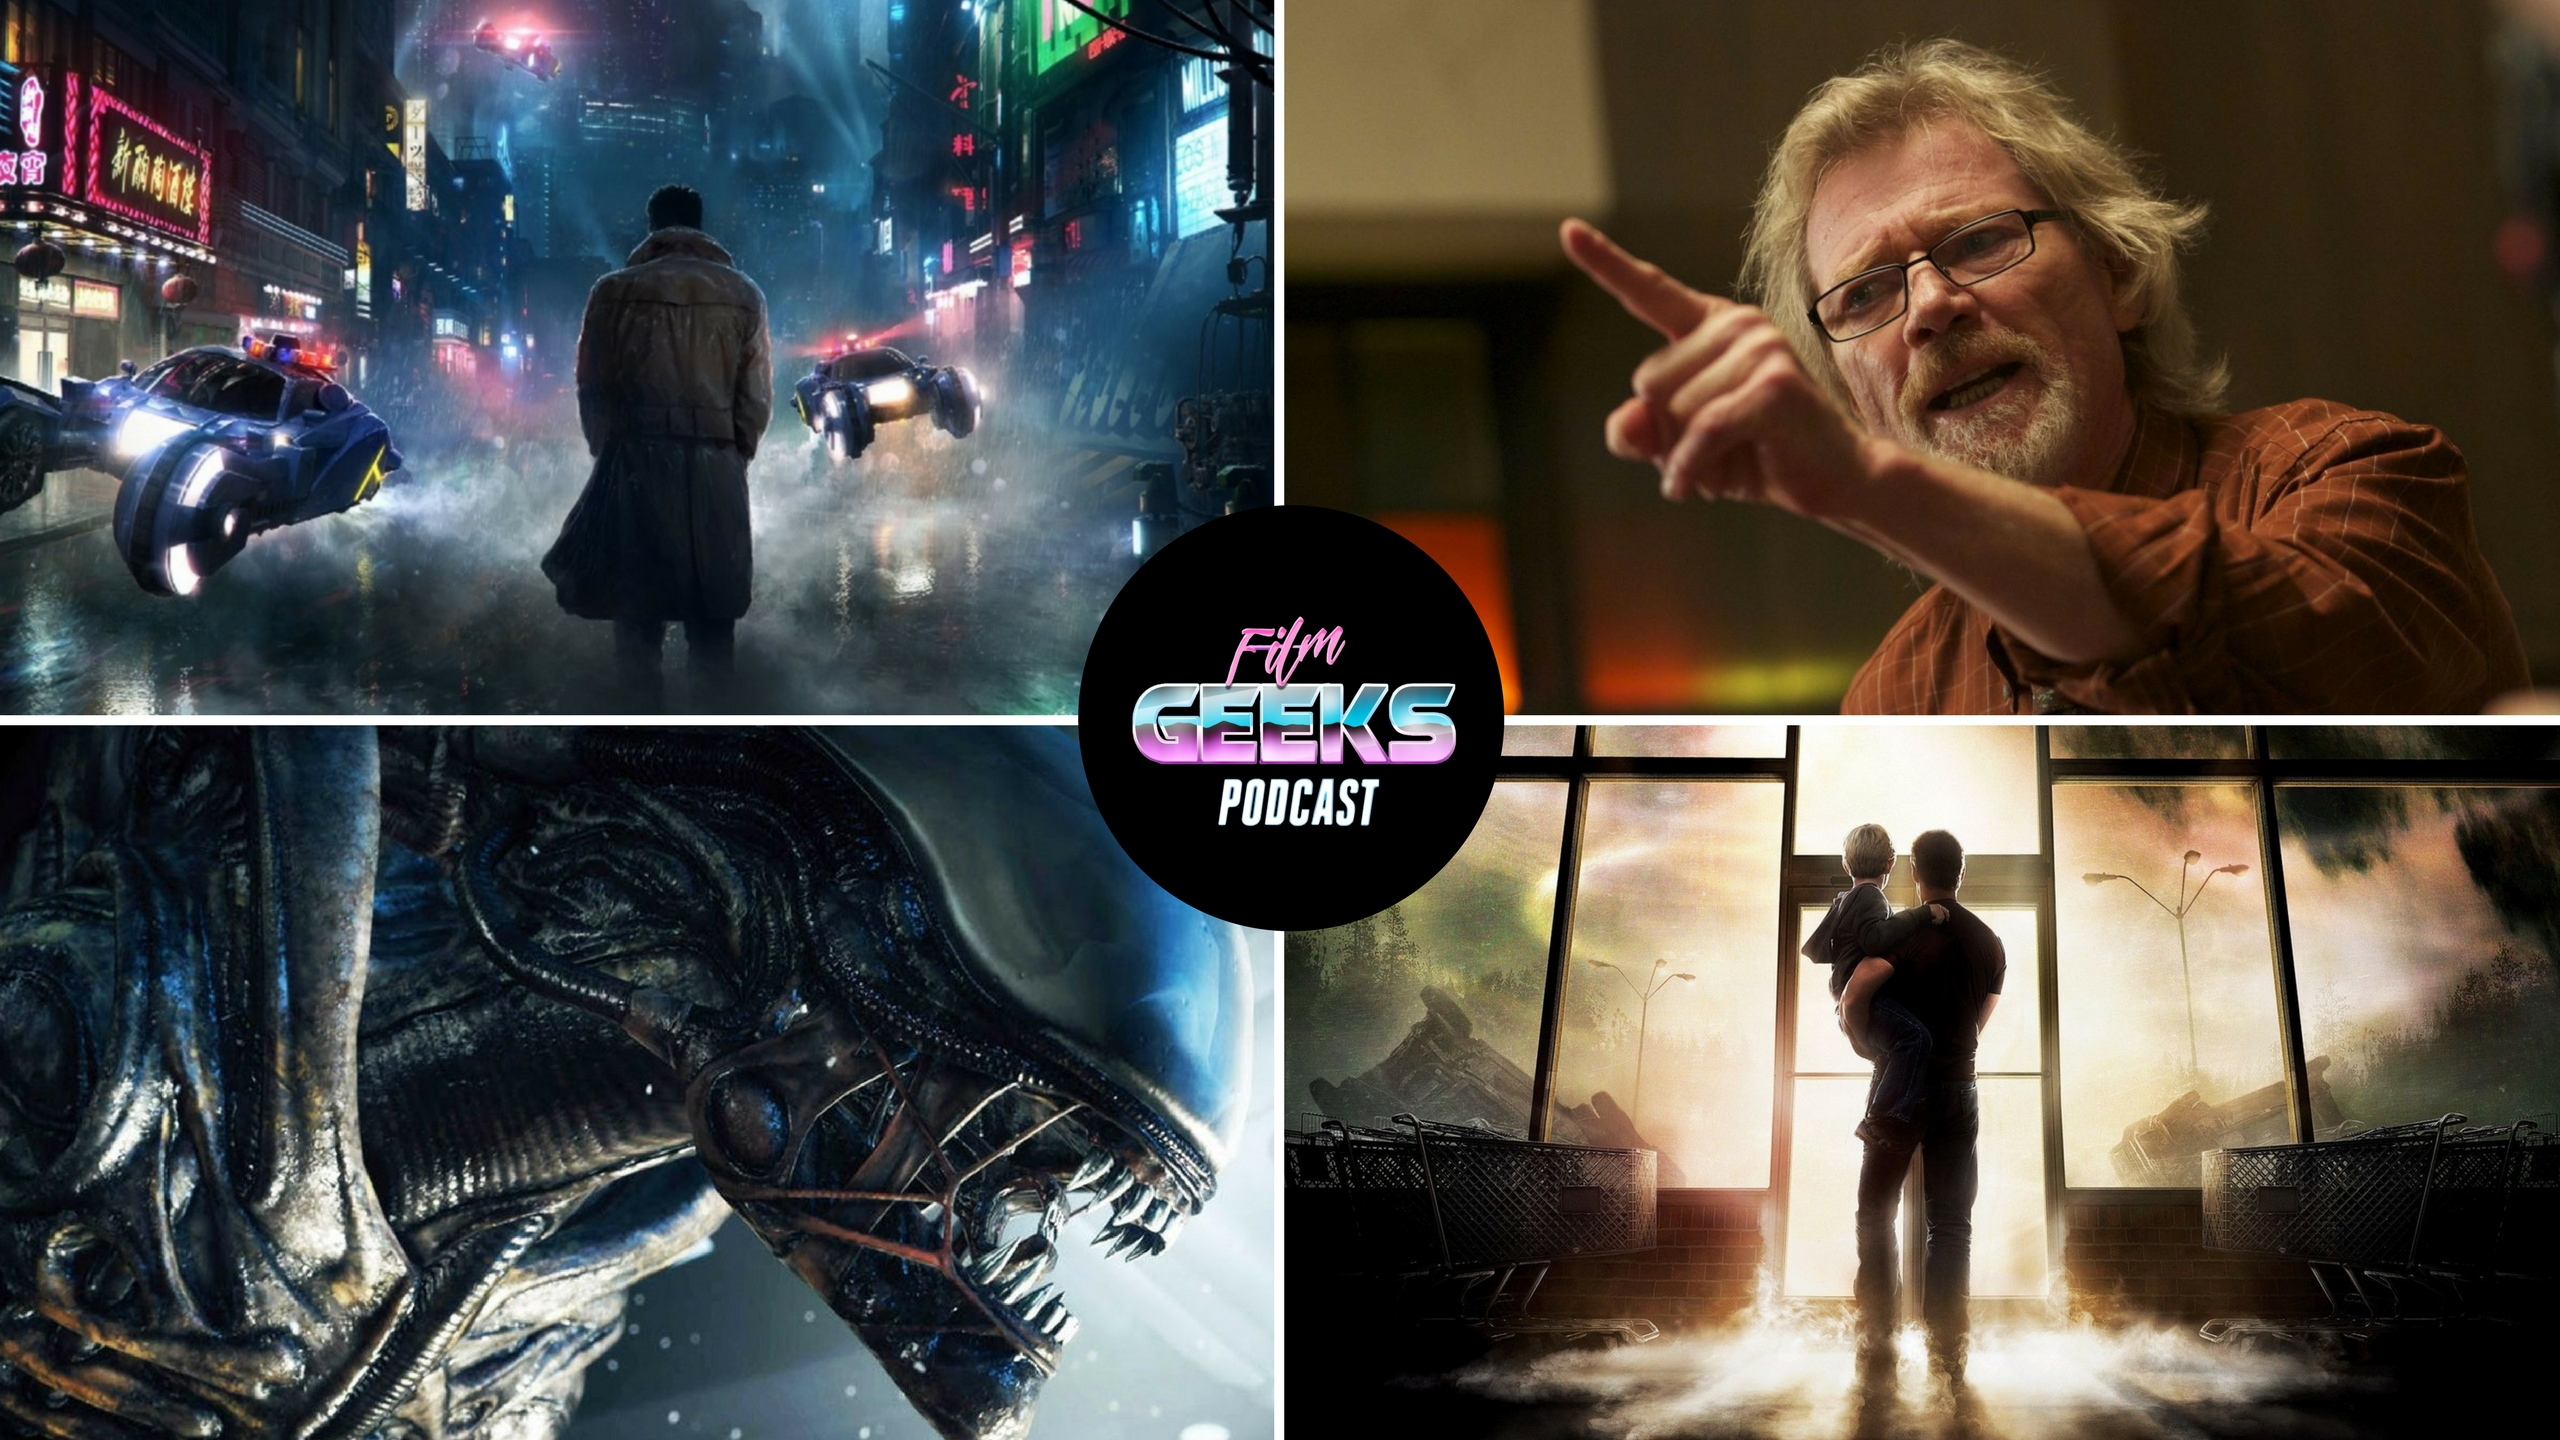 Film Geeks Podcast 20 – Alien Covenant Review | Blade Runner 2049 Trailer Reaction